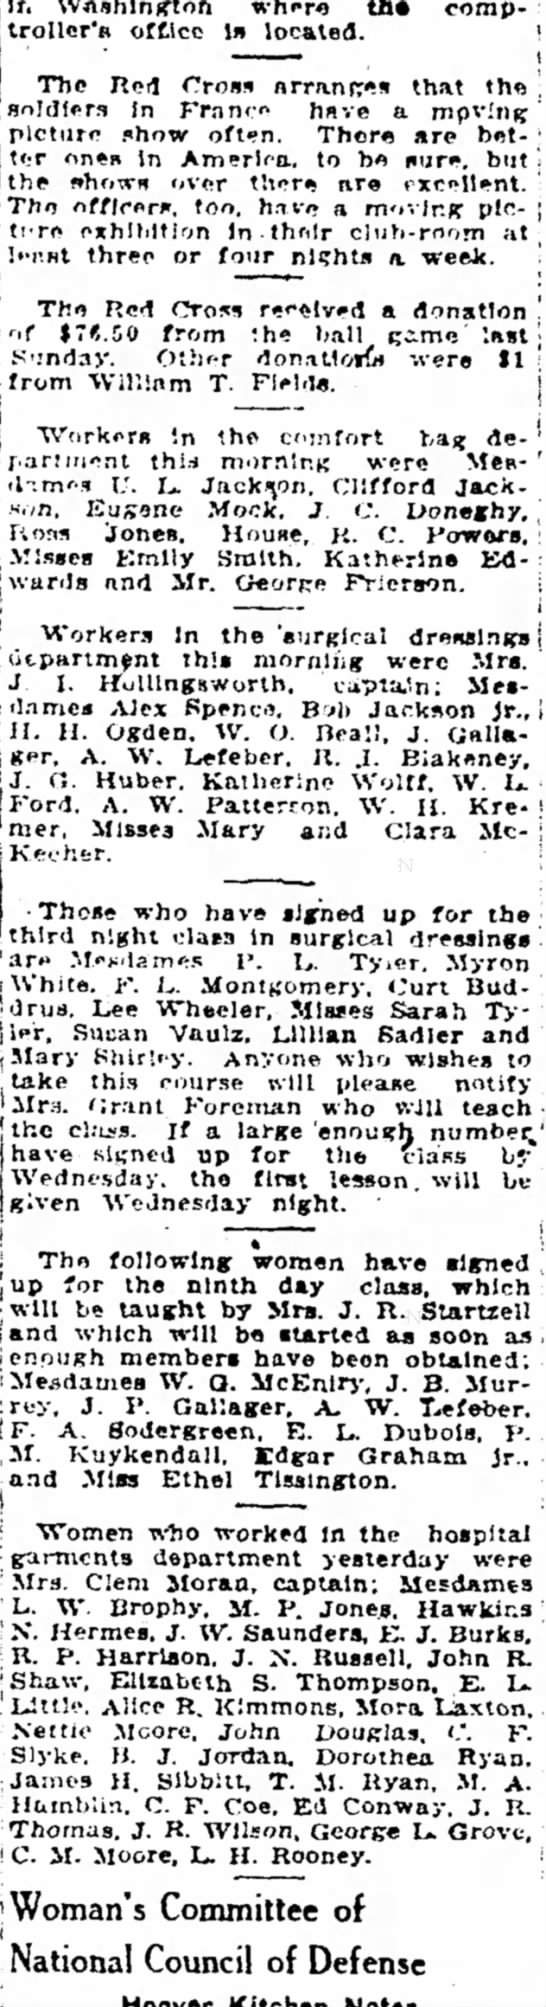 Muskogee Times Democrat, 22 June 1918 Red Cross workers-Mora Laxton -